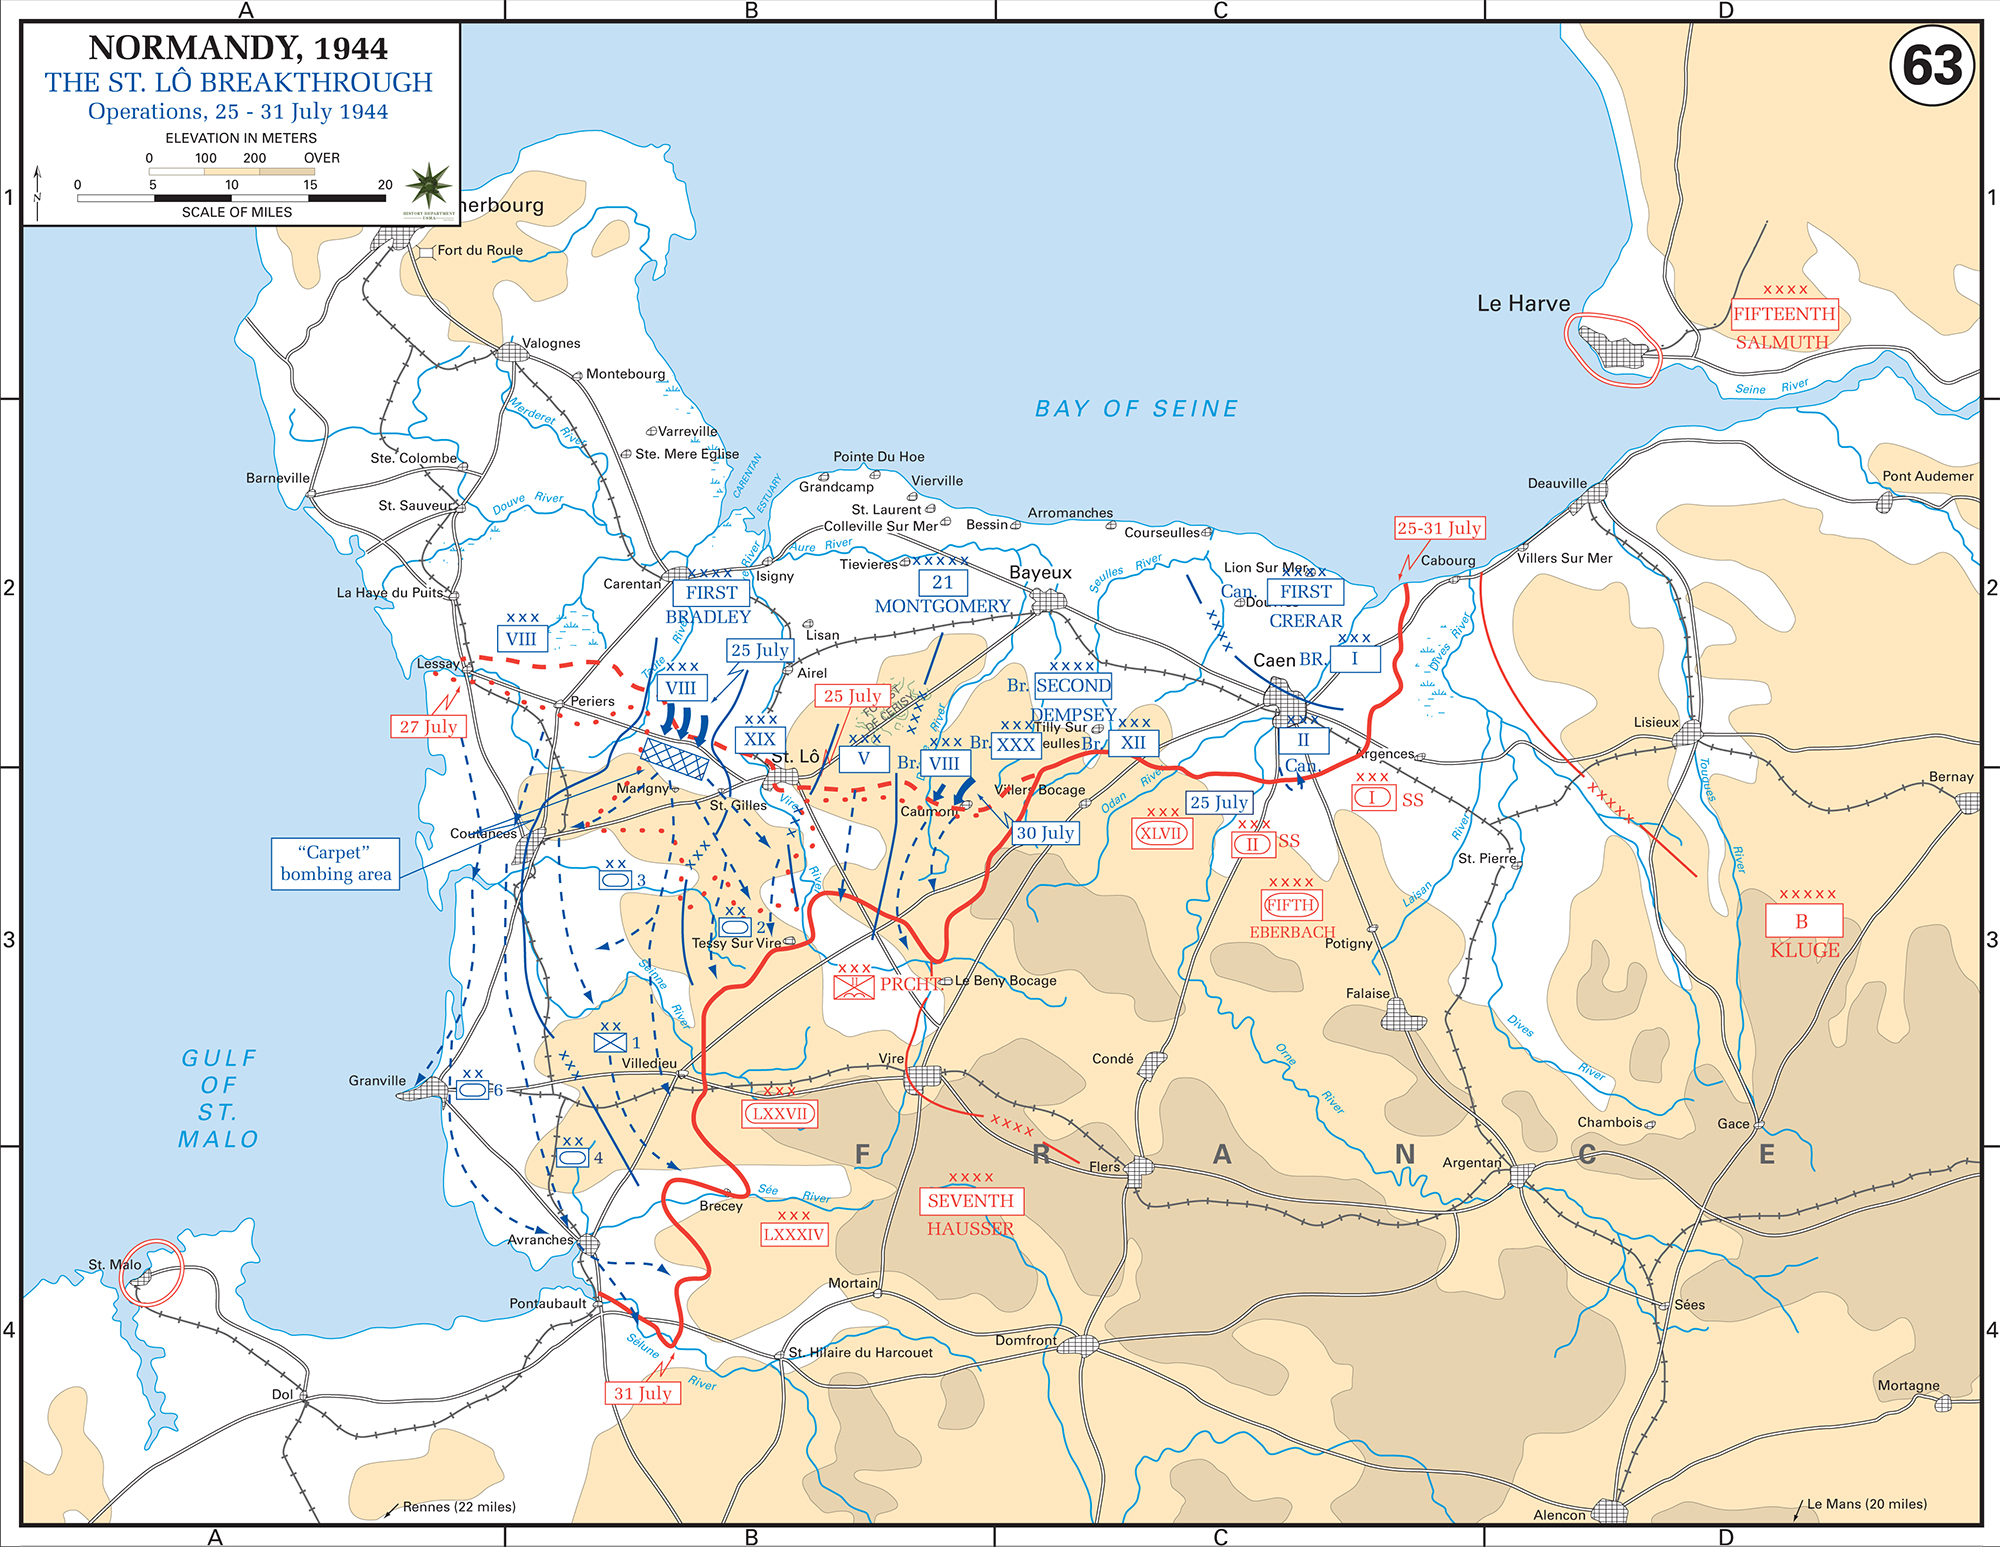 Map of WWII: Normandy Invasion. Operations July 25-31, 1944. The Saint-Lô (St. Lo) Breakthrough.